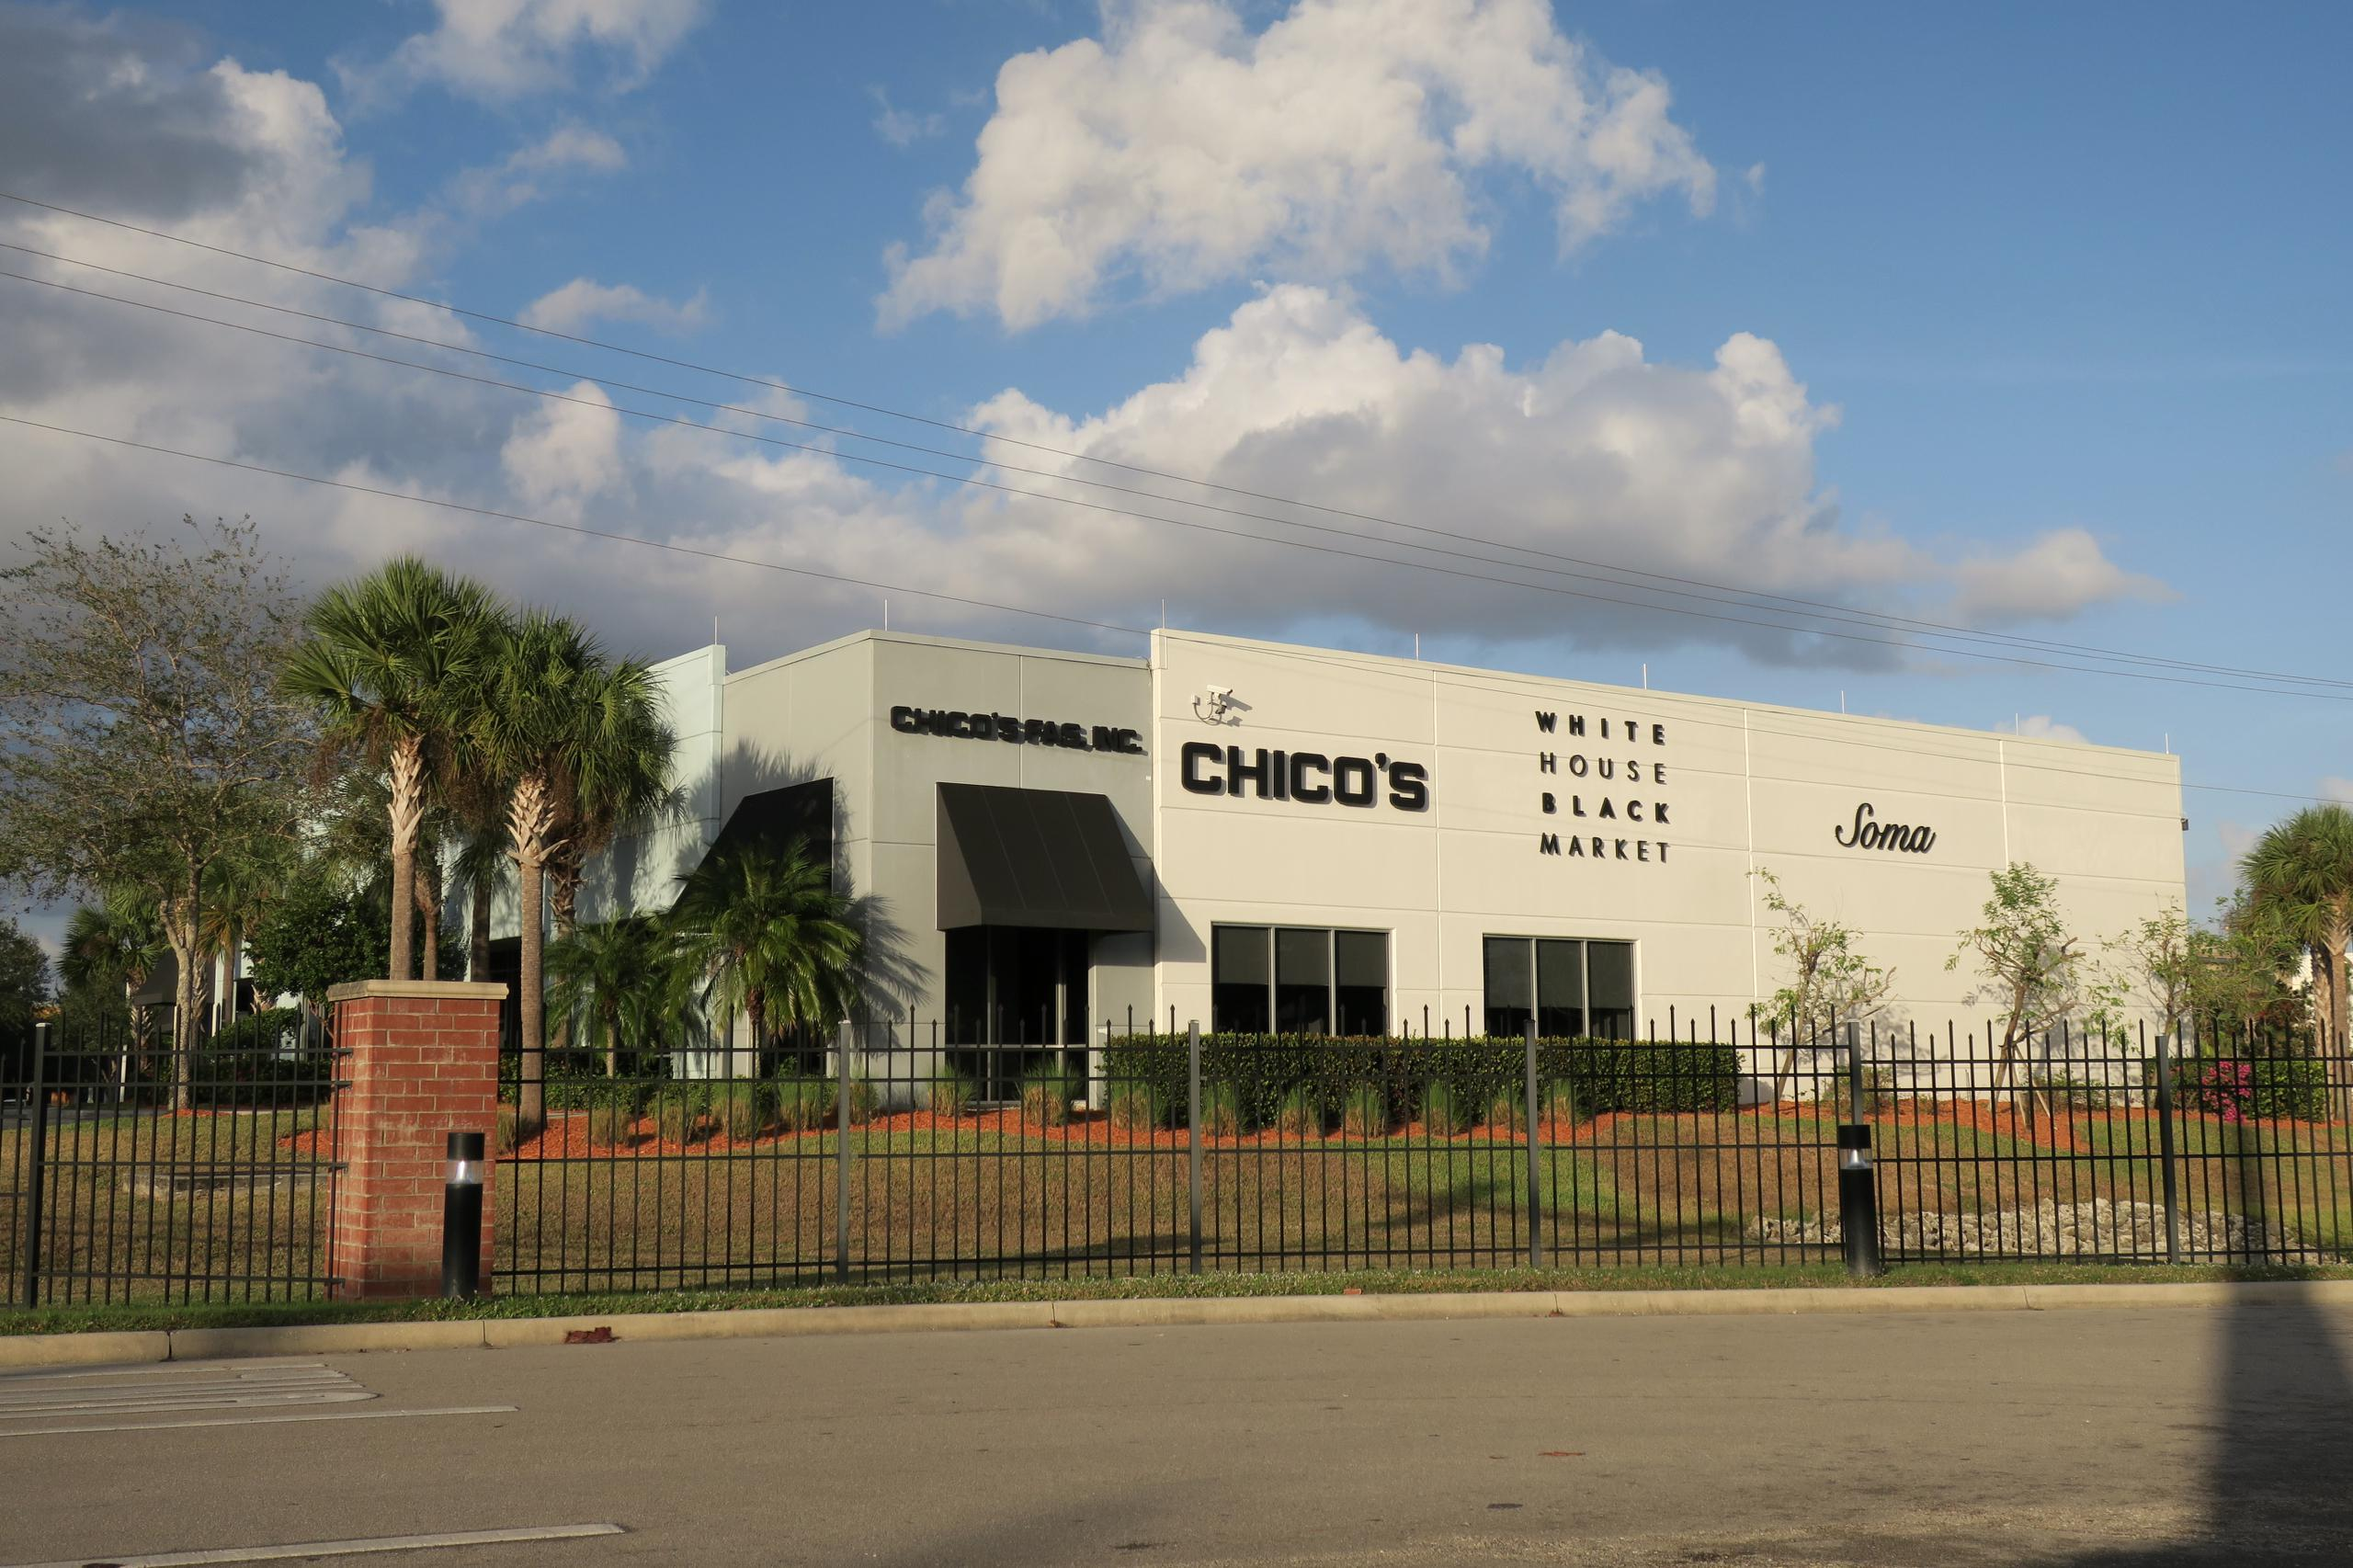 Chico's Corporate Office